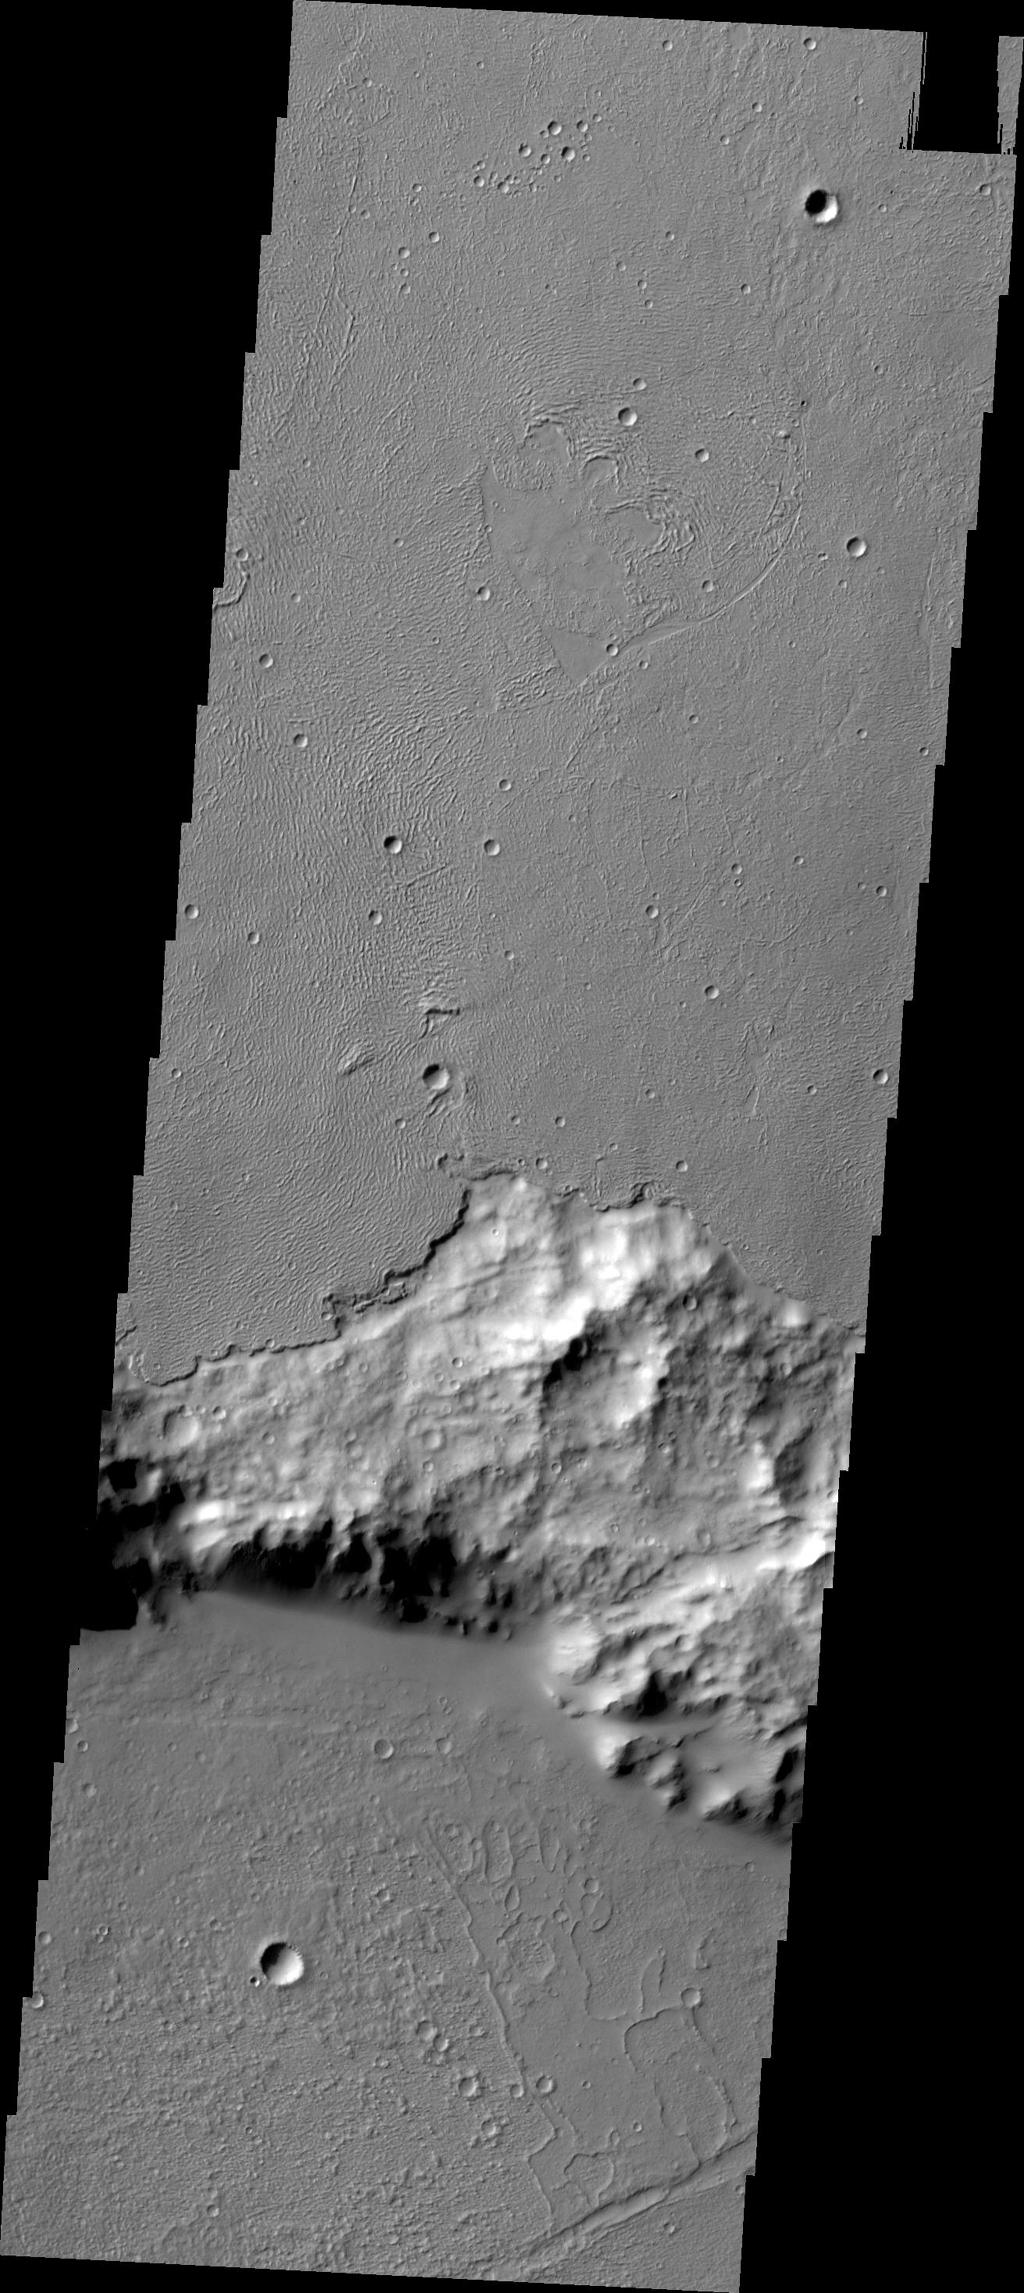 In some regions of Mars the relative ages of different materials can be determined. In this image, captured by NASA's 2001 Mars Odyssey, the younger lava flows of Daedalia Planum are on top of the older Terra Sirenum materials.